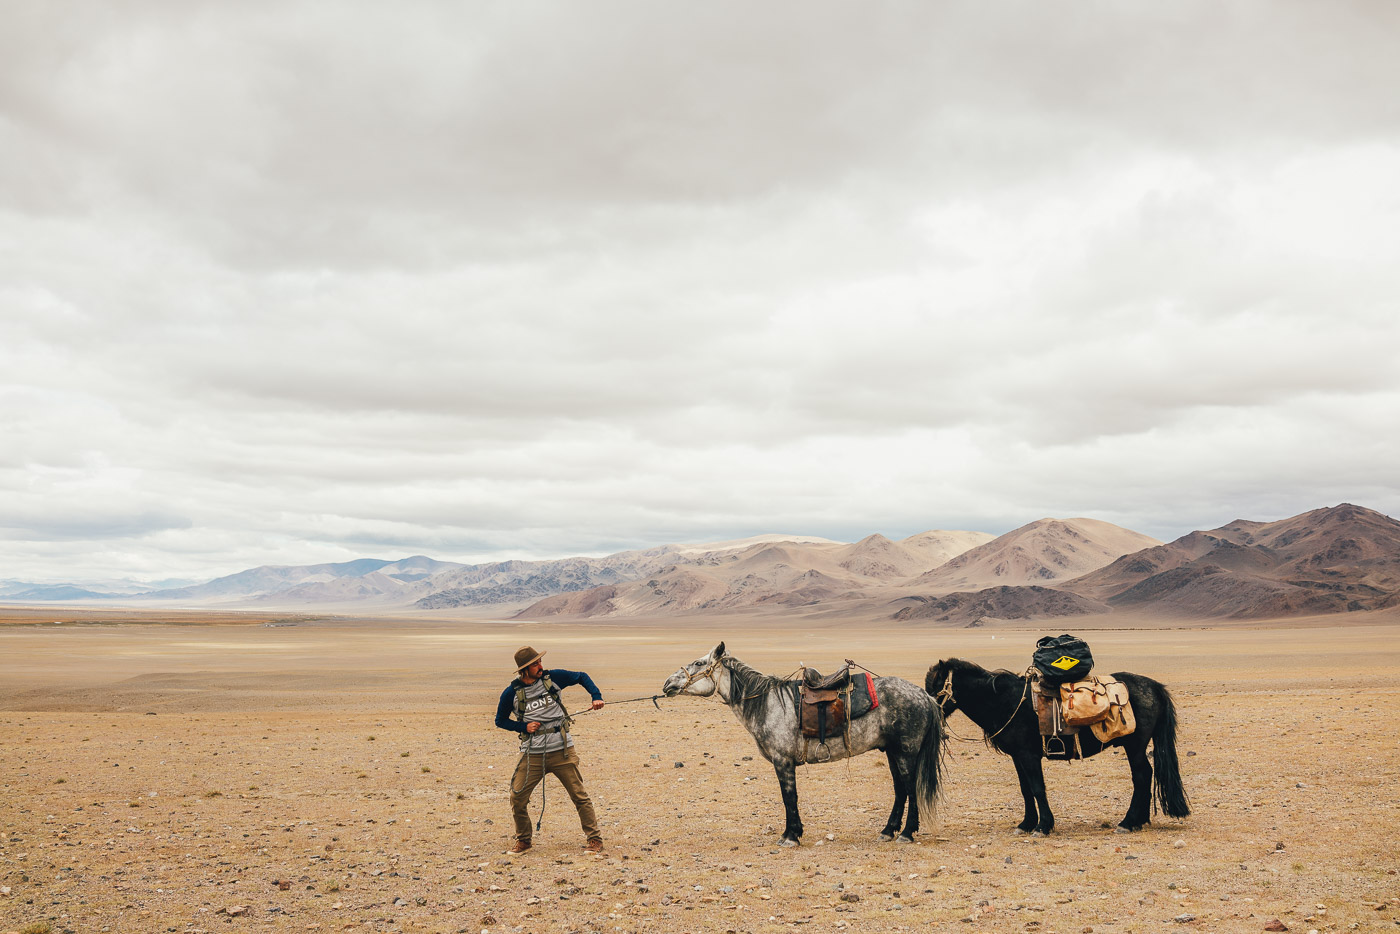 Challenges of Stefan Haworth on a solo horse trekking expedition in Mongolia